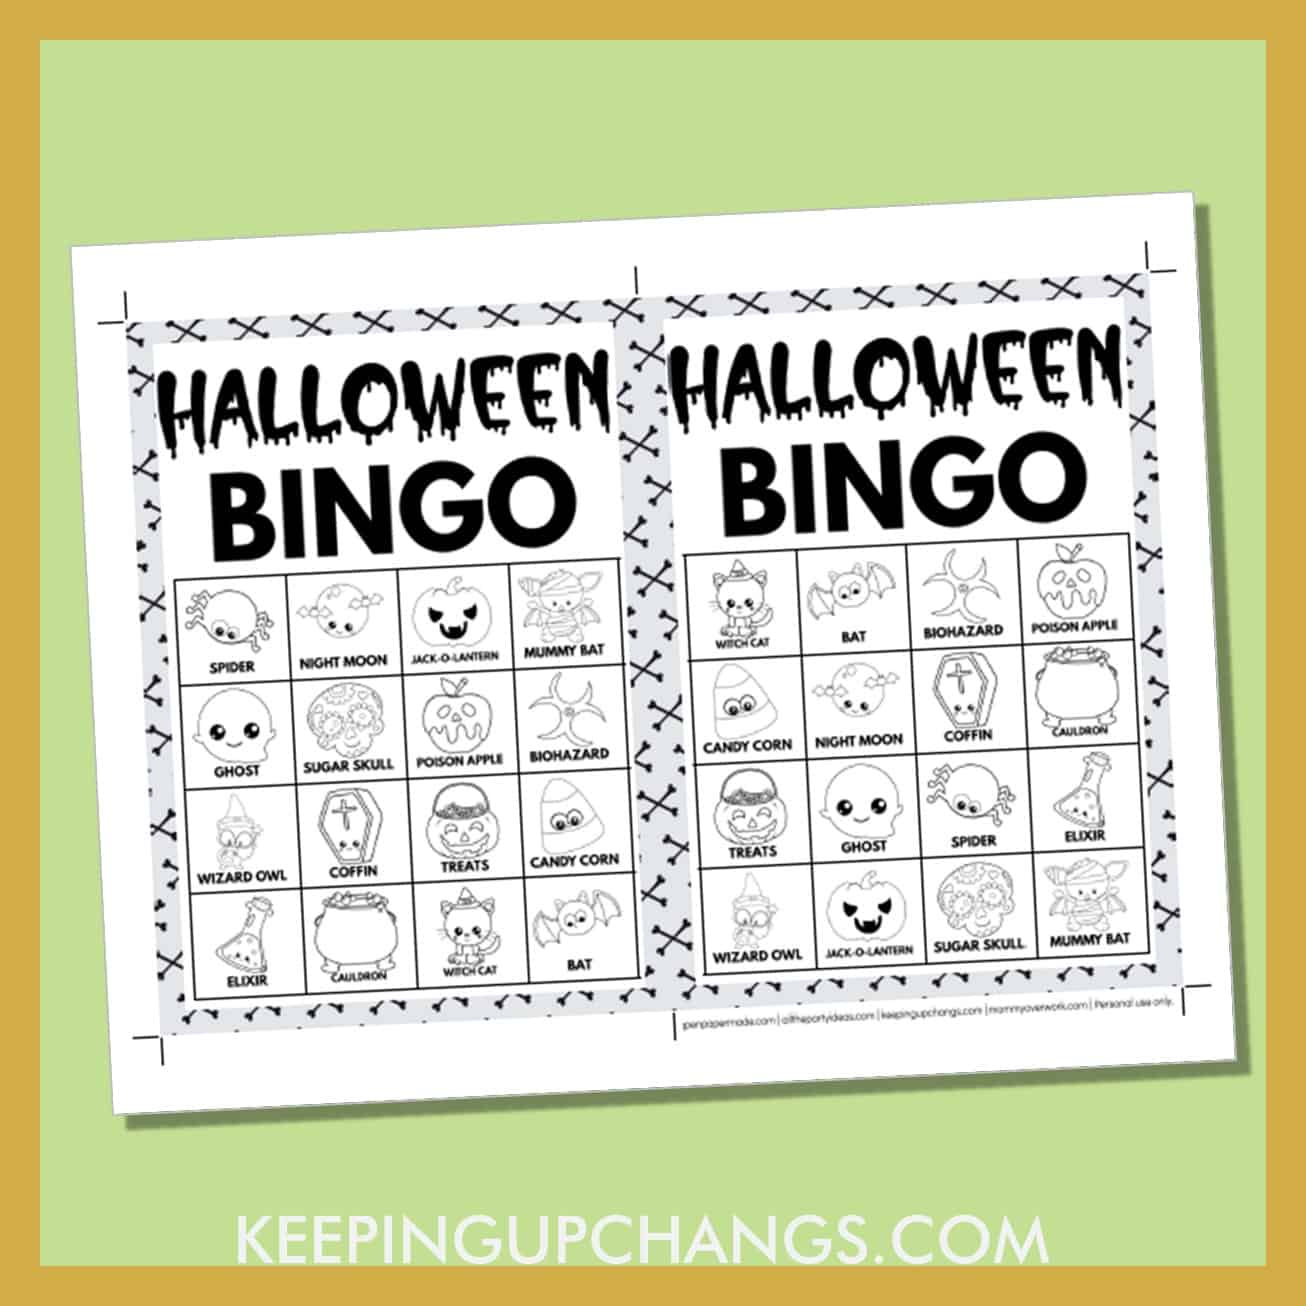 free fall halloween bingo card 4x4 5x7 black white coloring game boards with images and text words.